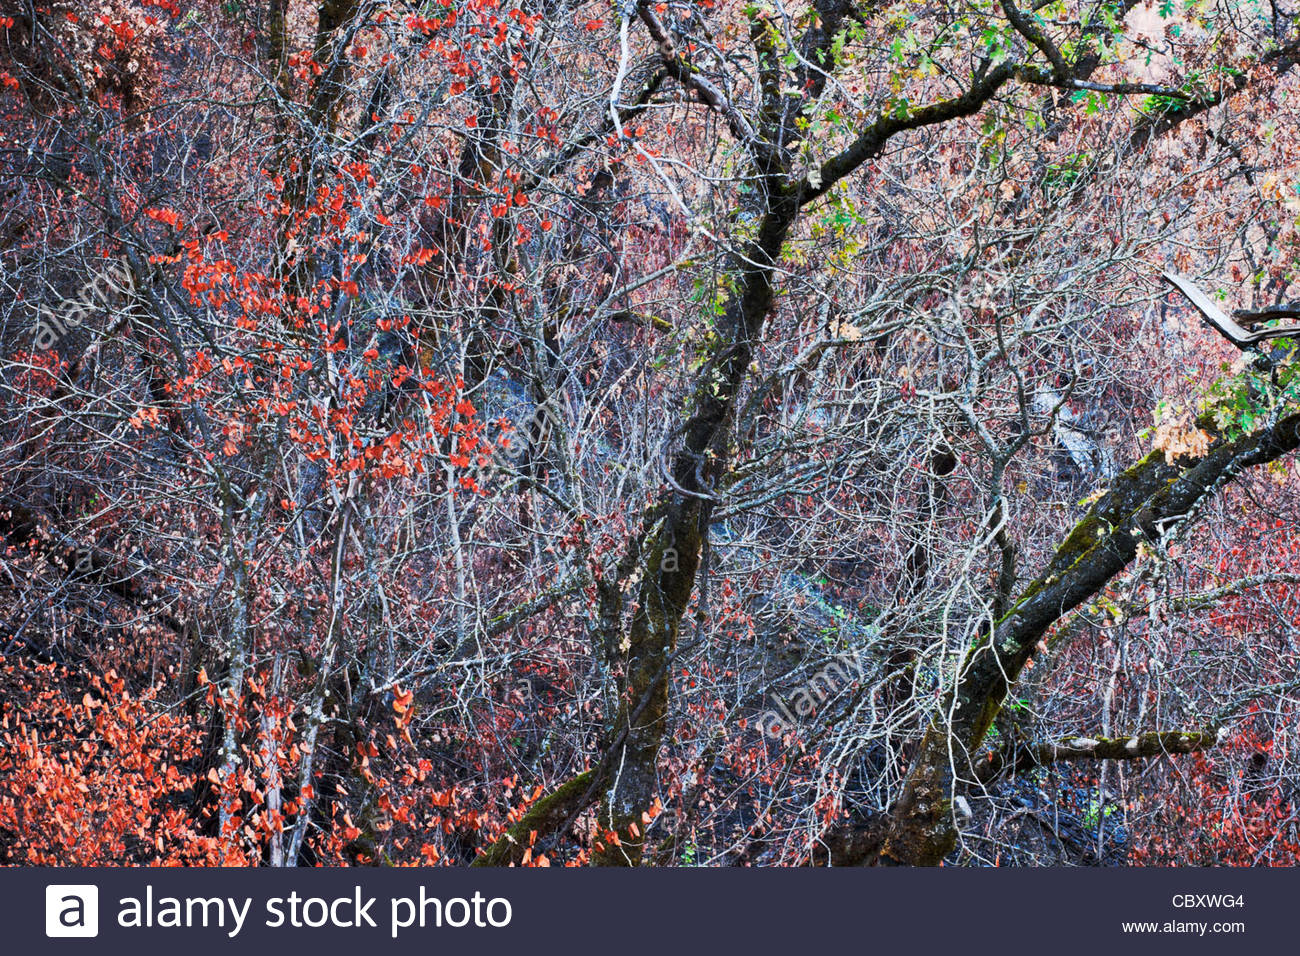 Merced River Canyon Fall Color, Stanislaus National Forest, California - Stock Image